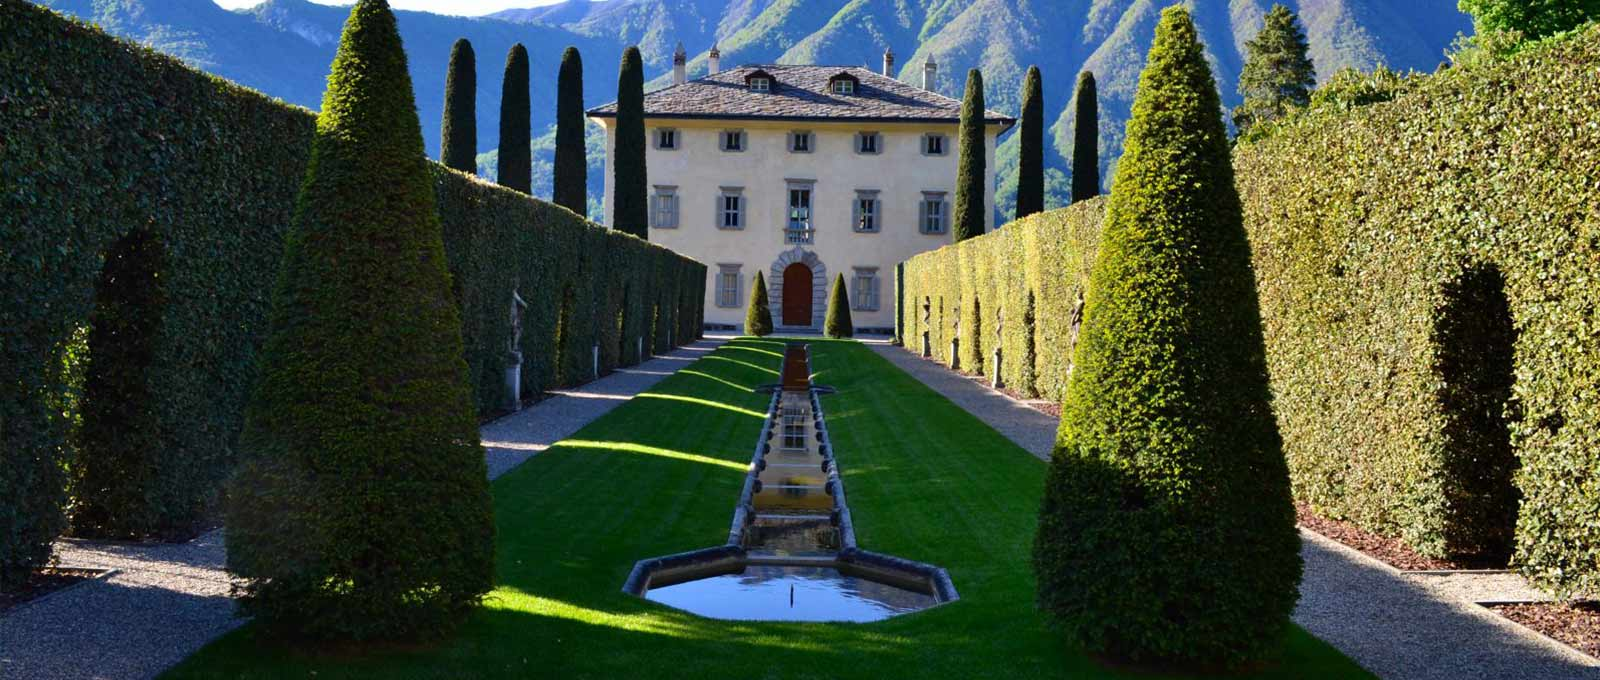 villa balbiano como weddings 2